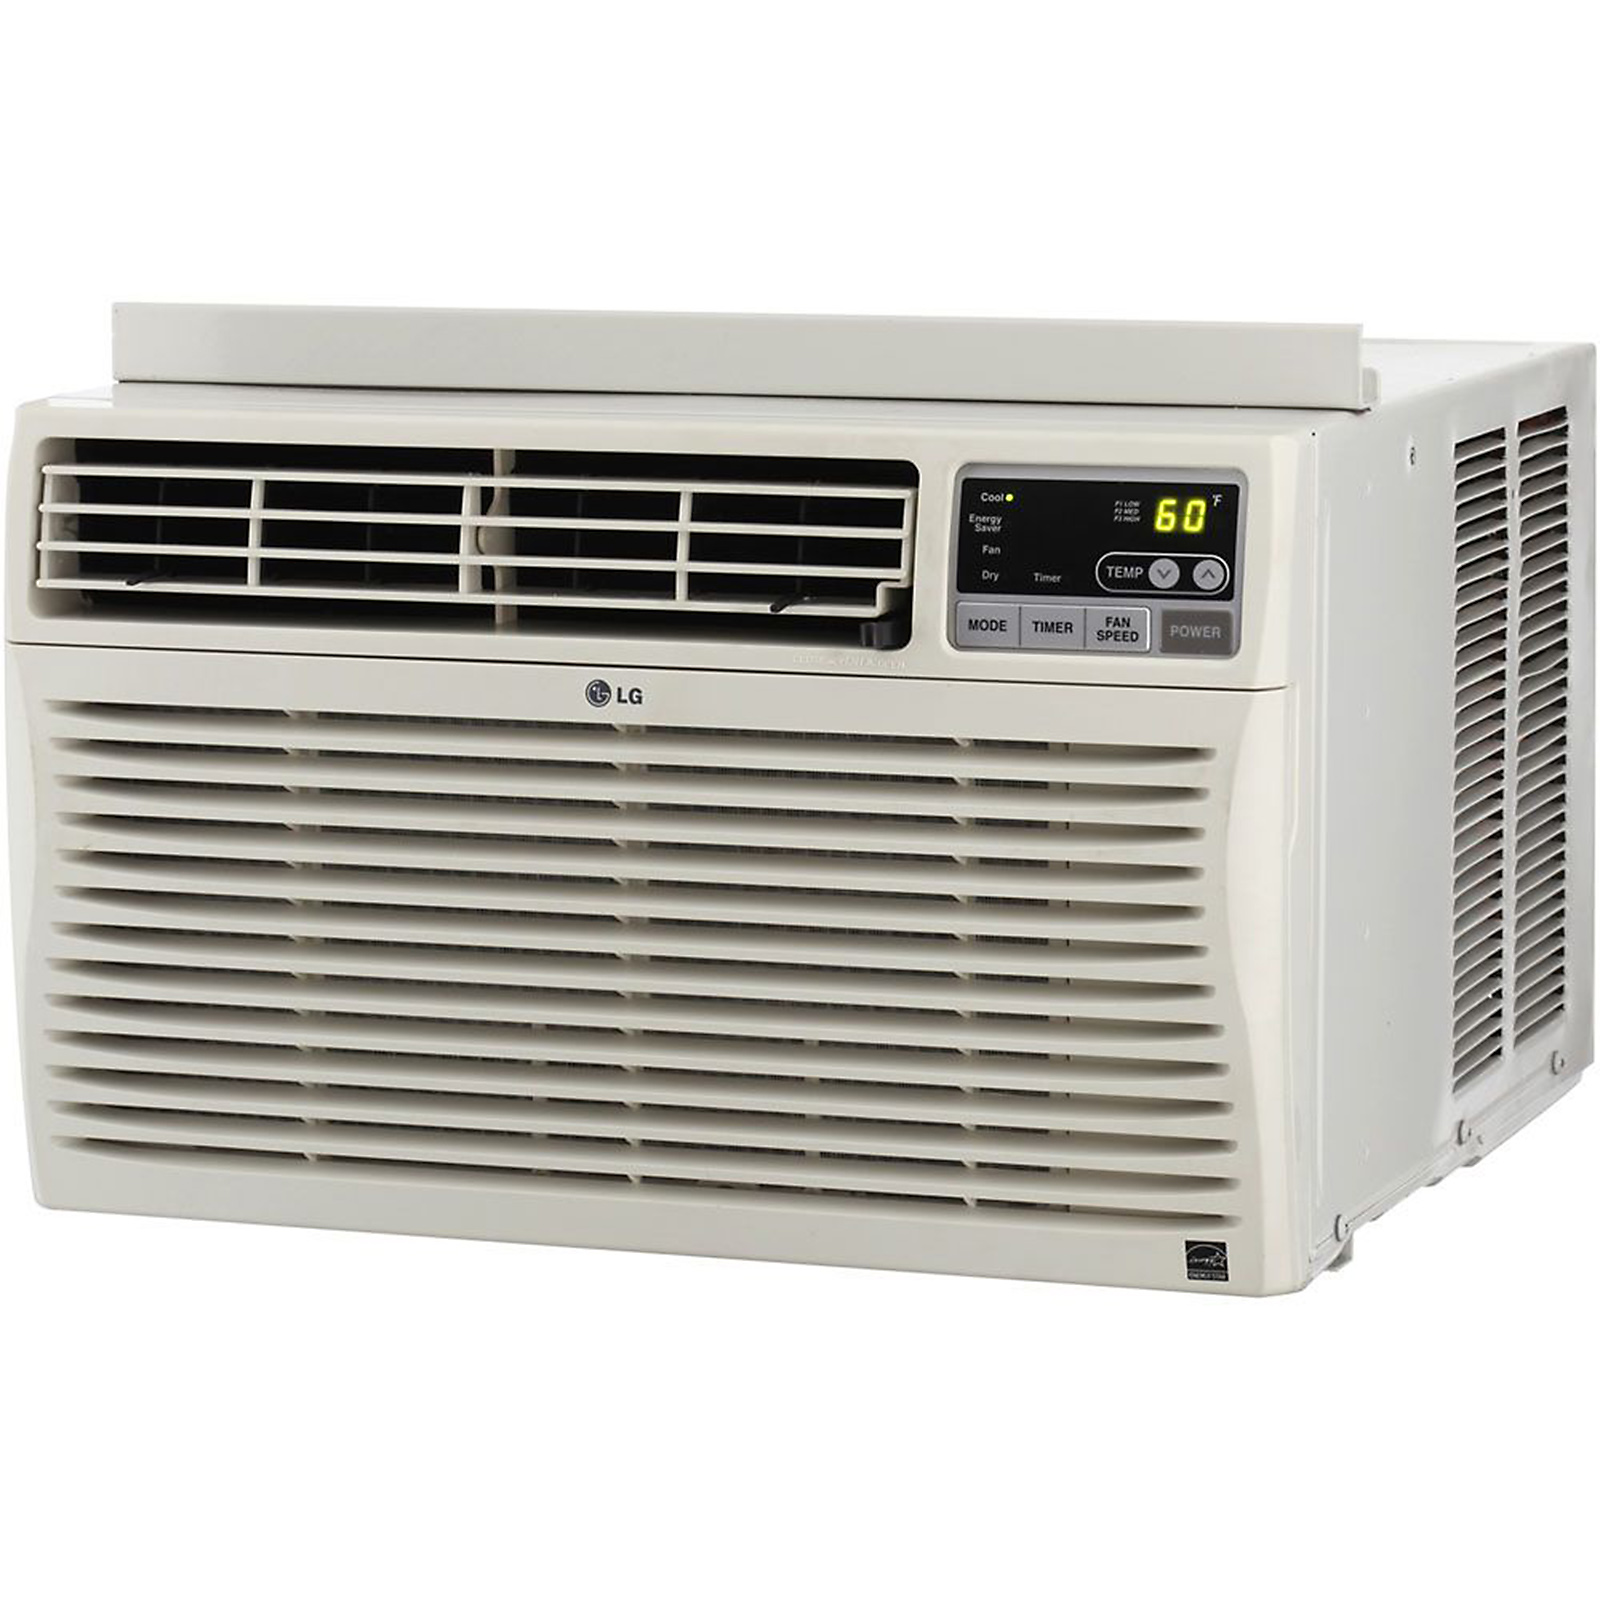 LG Electronics 8,000 BTU Window-Mounted Air Conditioner with Remote Control (115 volts)